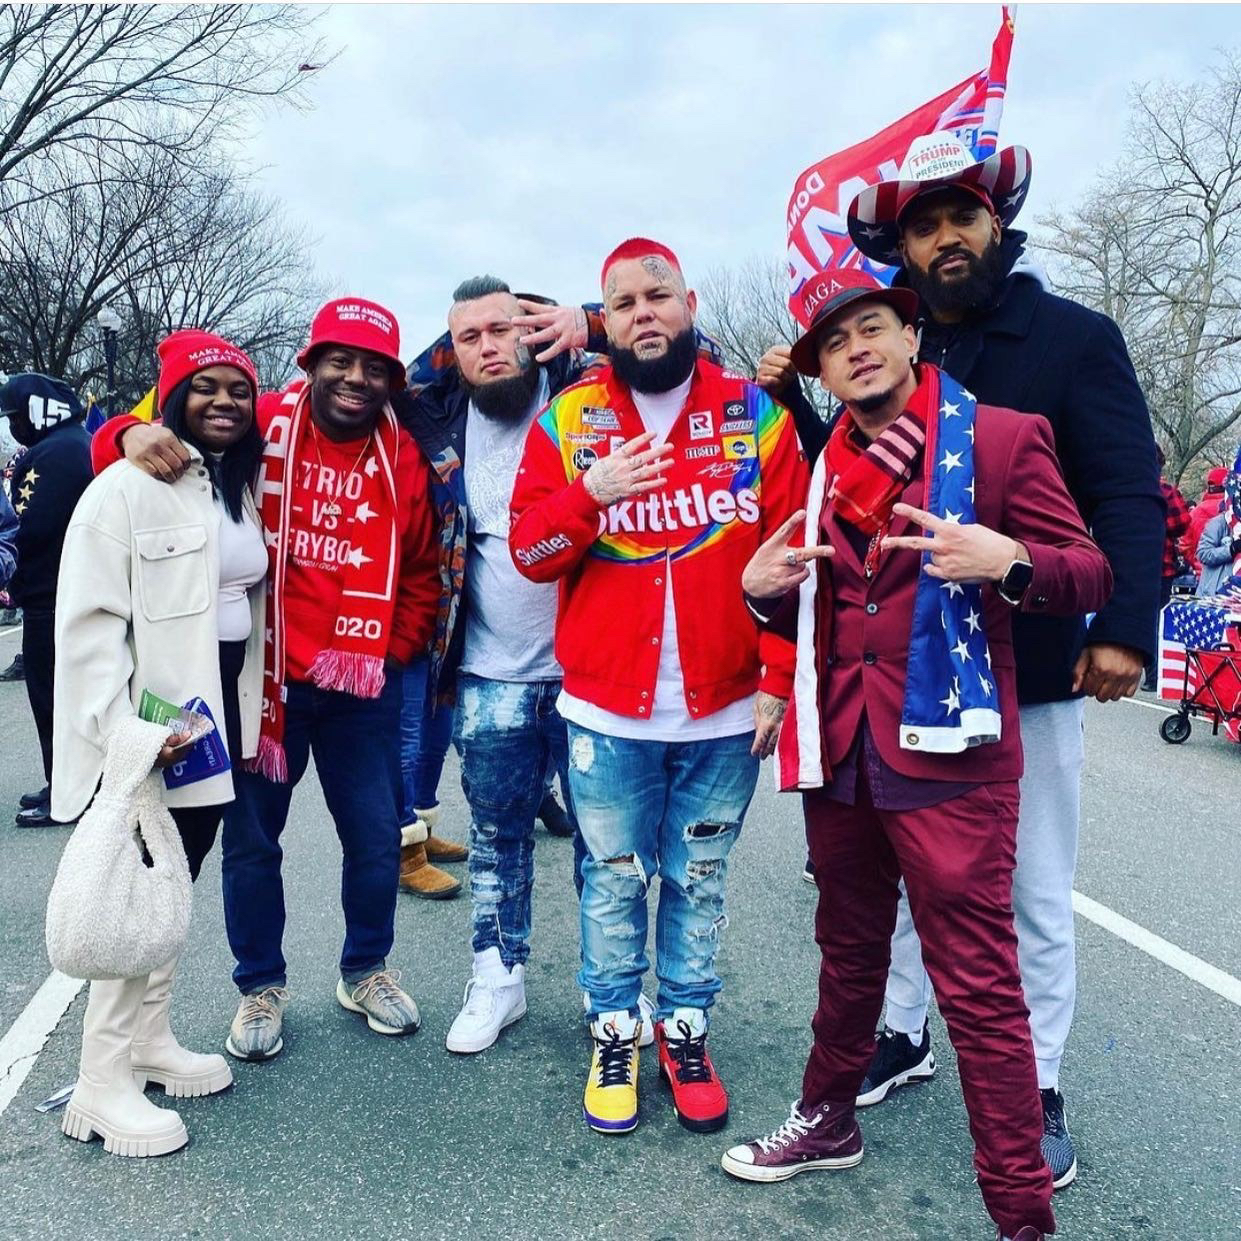 Pro-Trump rappers posing in DC.